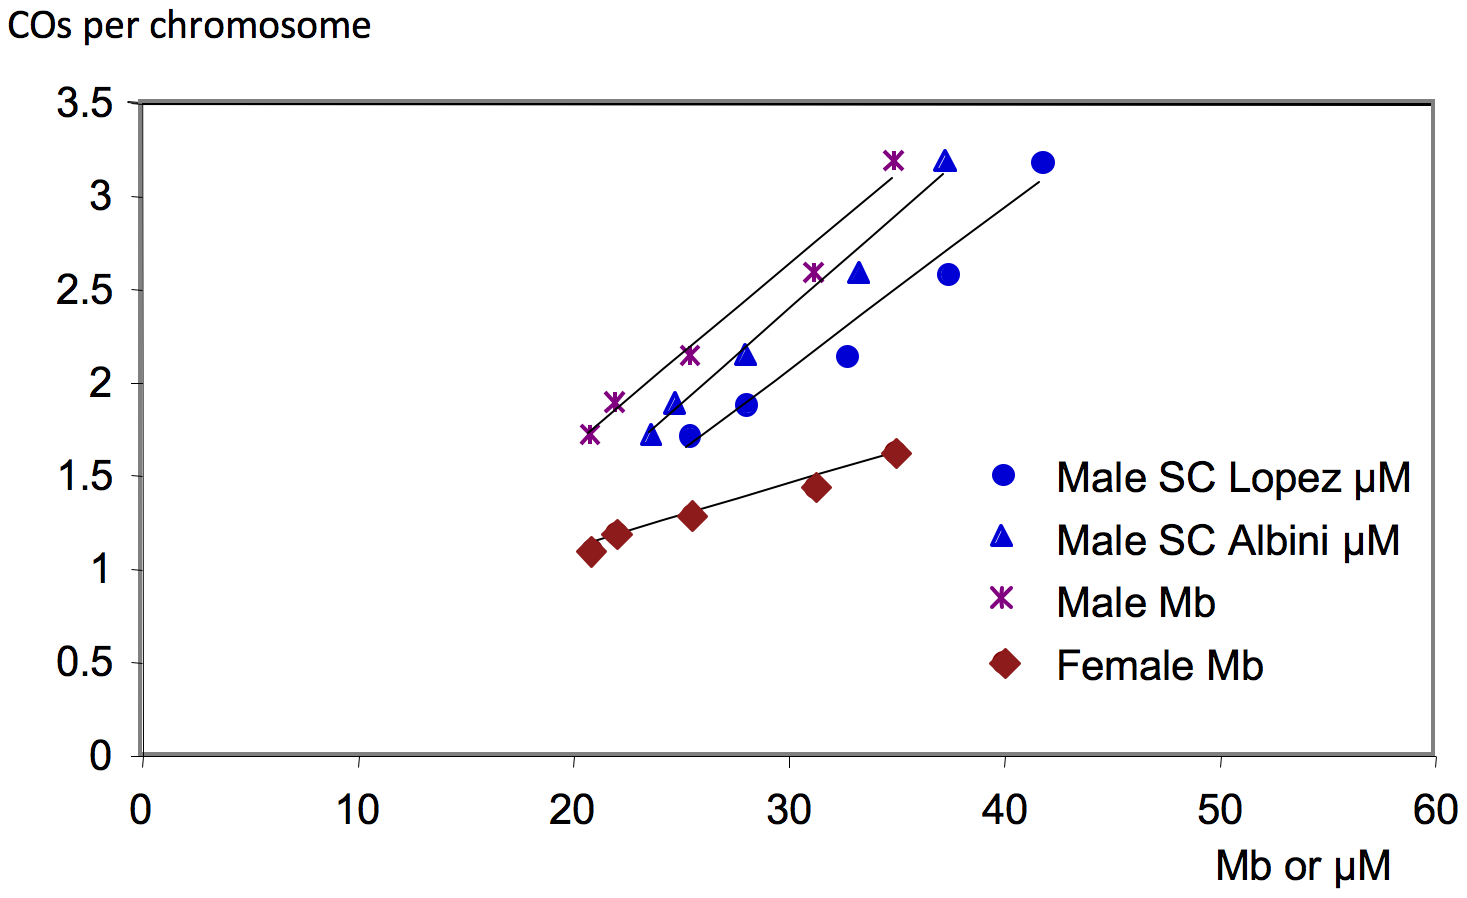 Correlation between the number of COs per chromosome and the physical size of chromosomes.